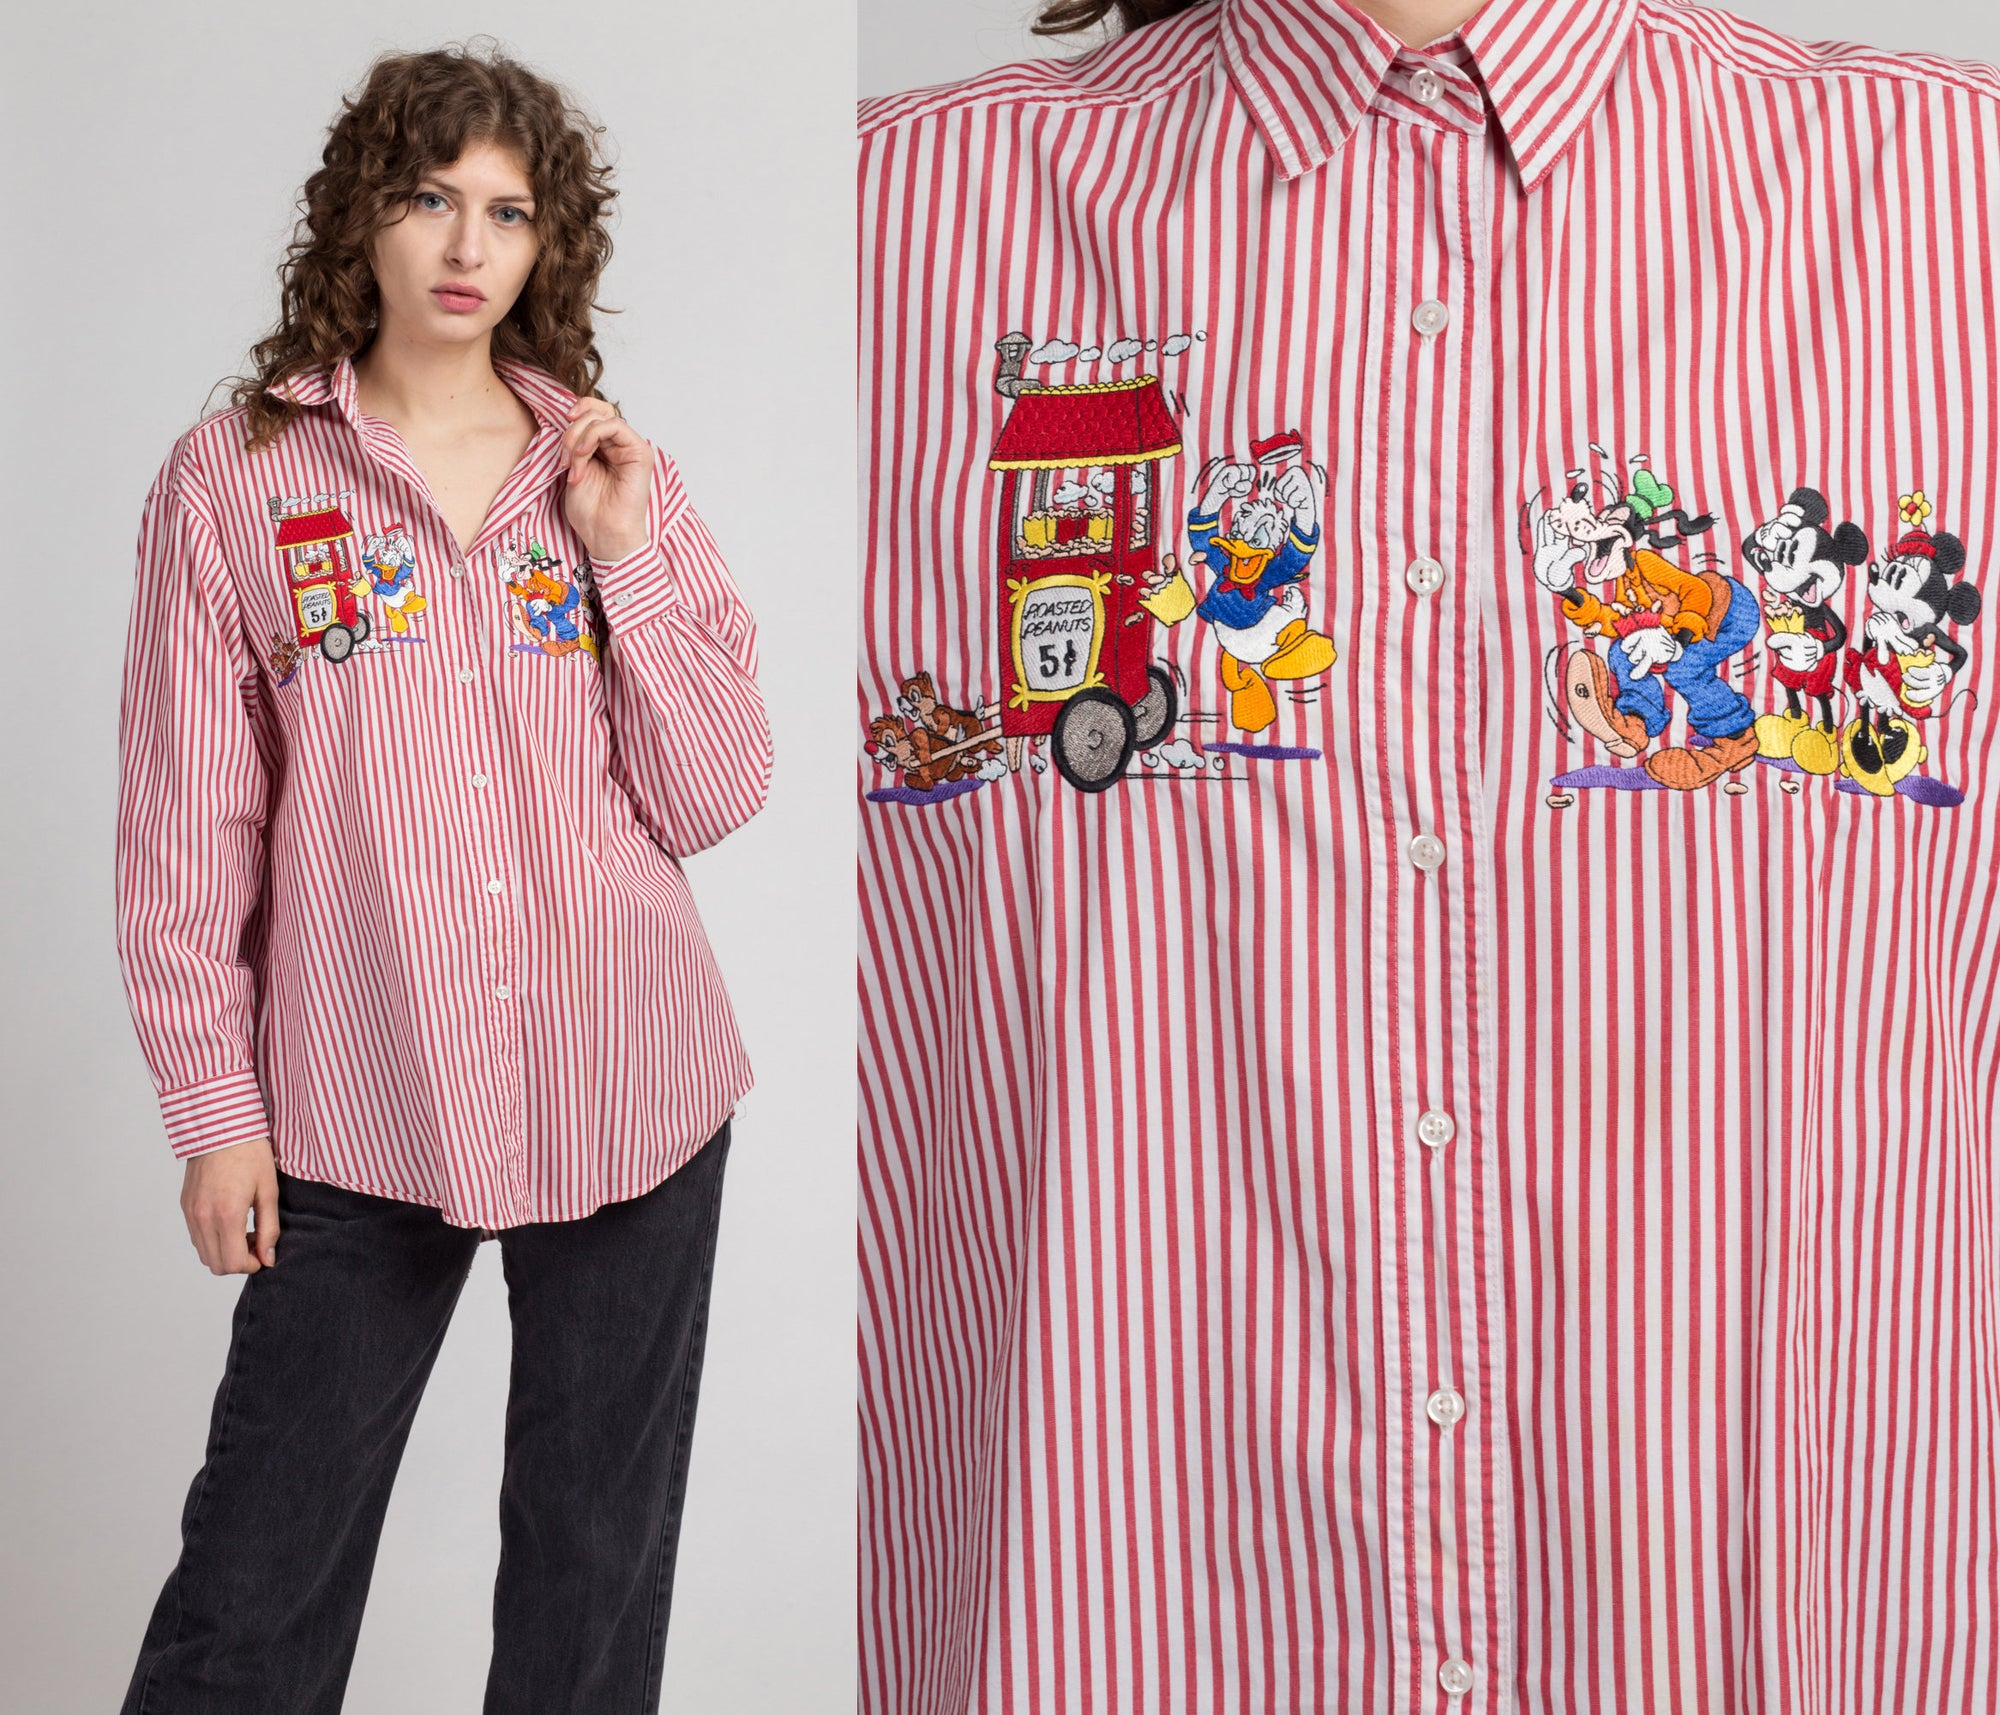 90s Looney Tunes Roasted Peanuts Shirt - Extra Large | Vintage Red & White Striped Button Up Top